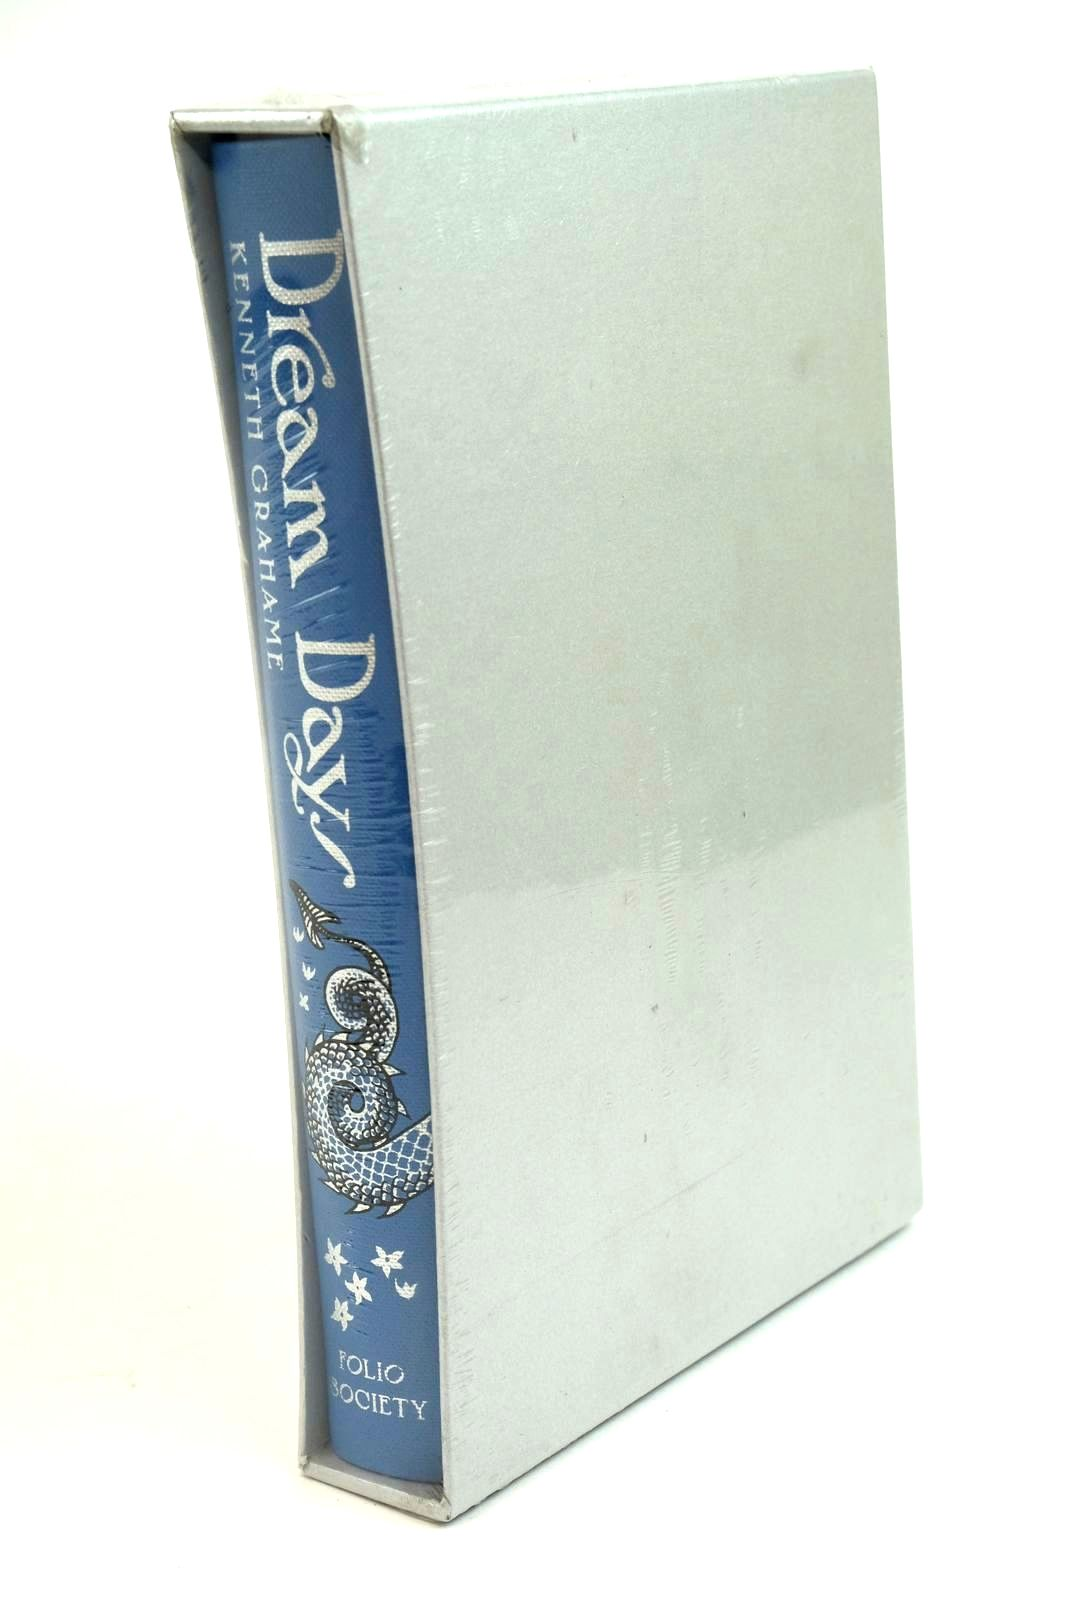 Photo of DREAM DAYS written by Grahame, Kenneth illustrated by McFarlane, Debra published by Folio Society (STOCK CODE: 1321723)  for sale by Stella & Rose's Books